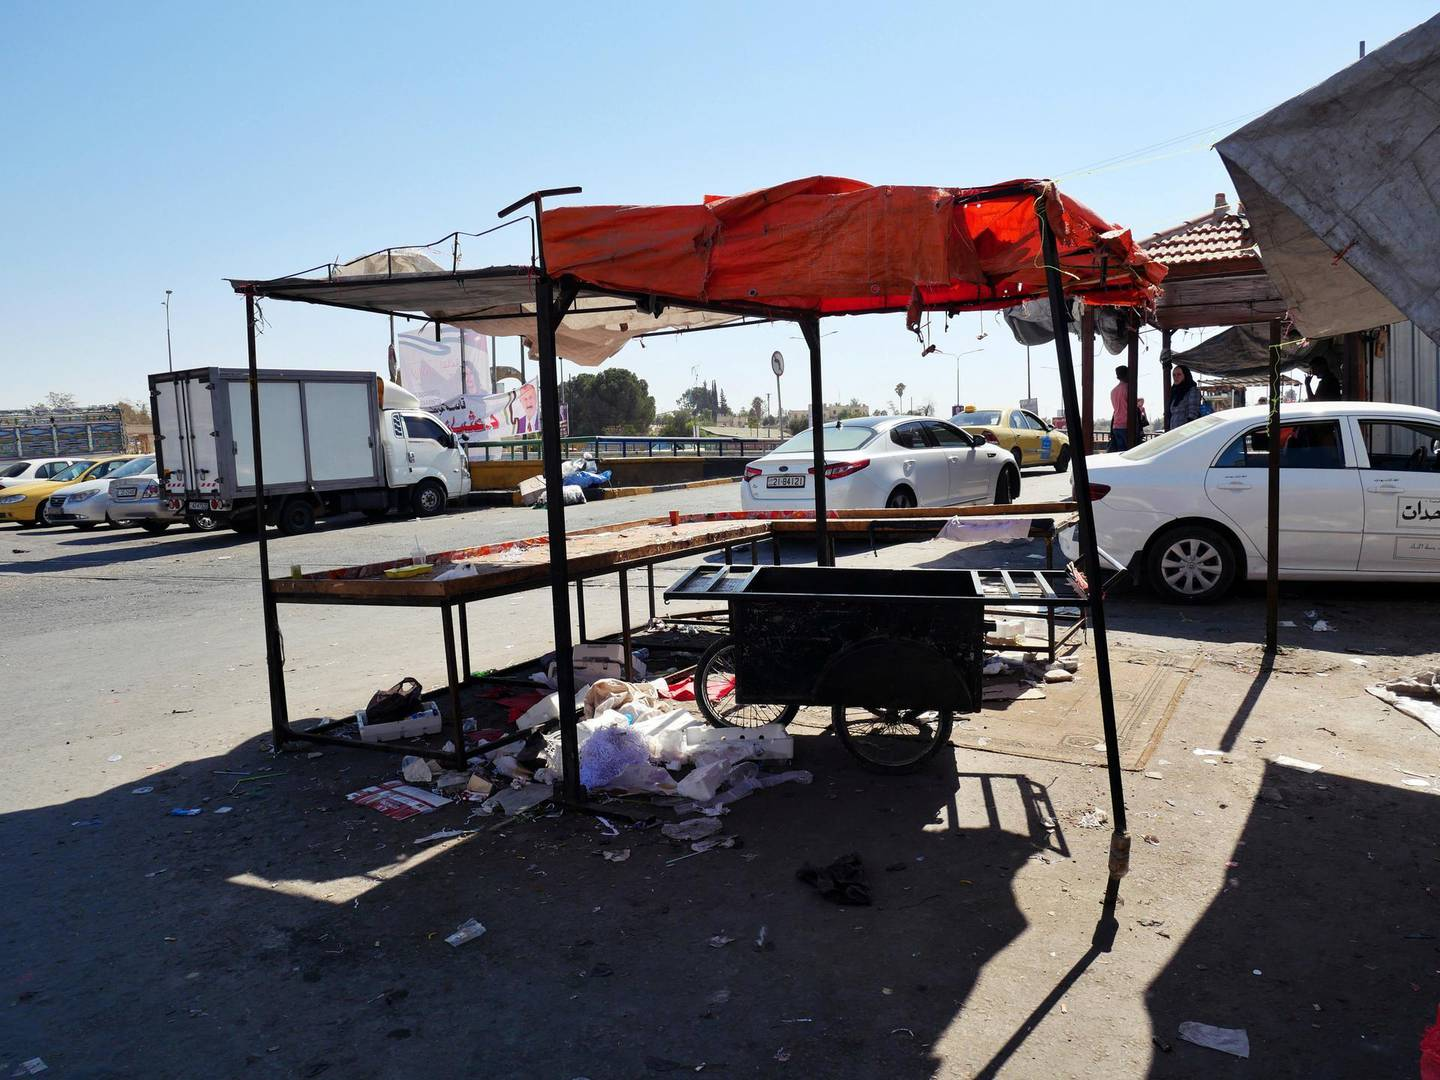 Pictured: The now-closed market stall at the edge of the market belonging to the men who have been charged with the attack on the 16-year-old victim.  19/10/2020 Photographer: Charlie Faulkner